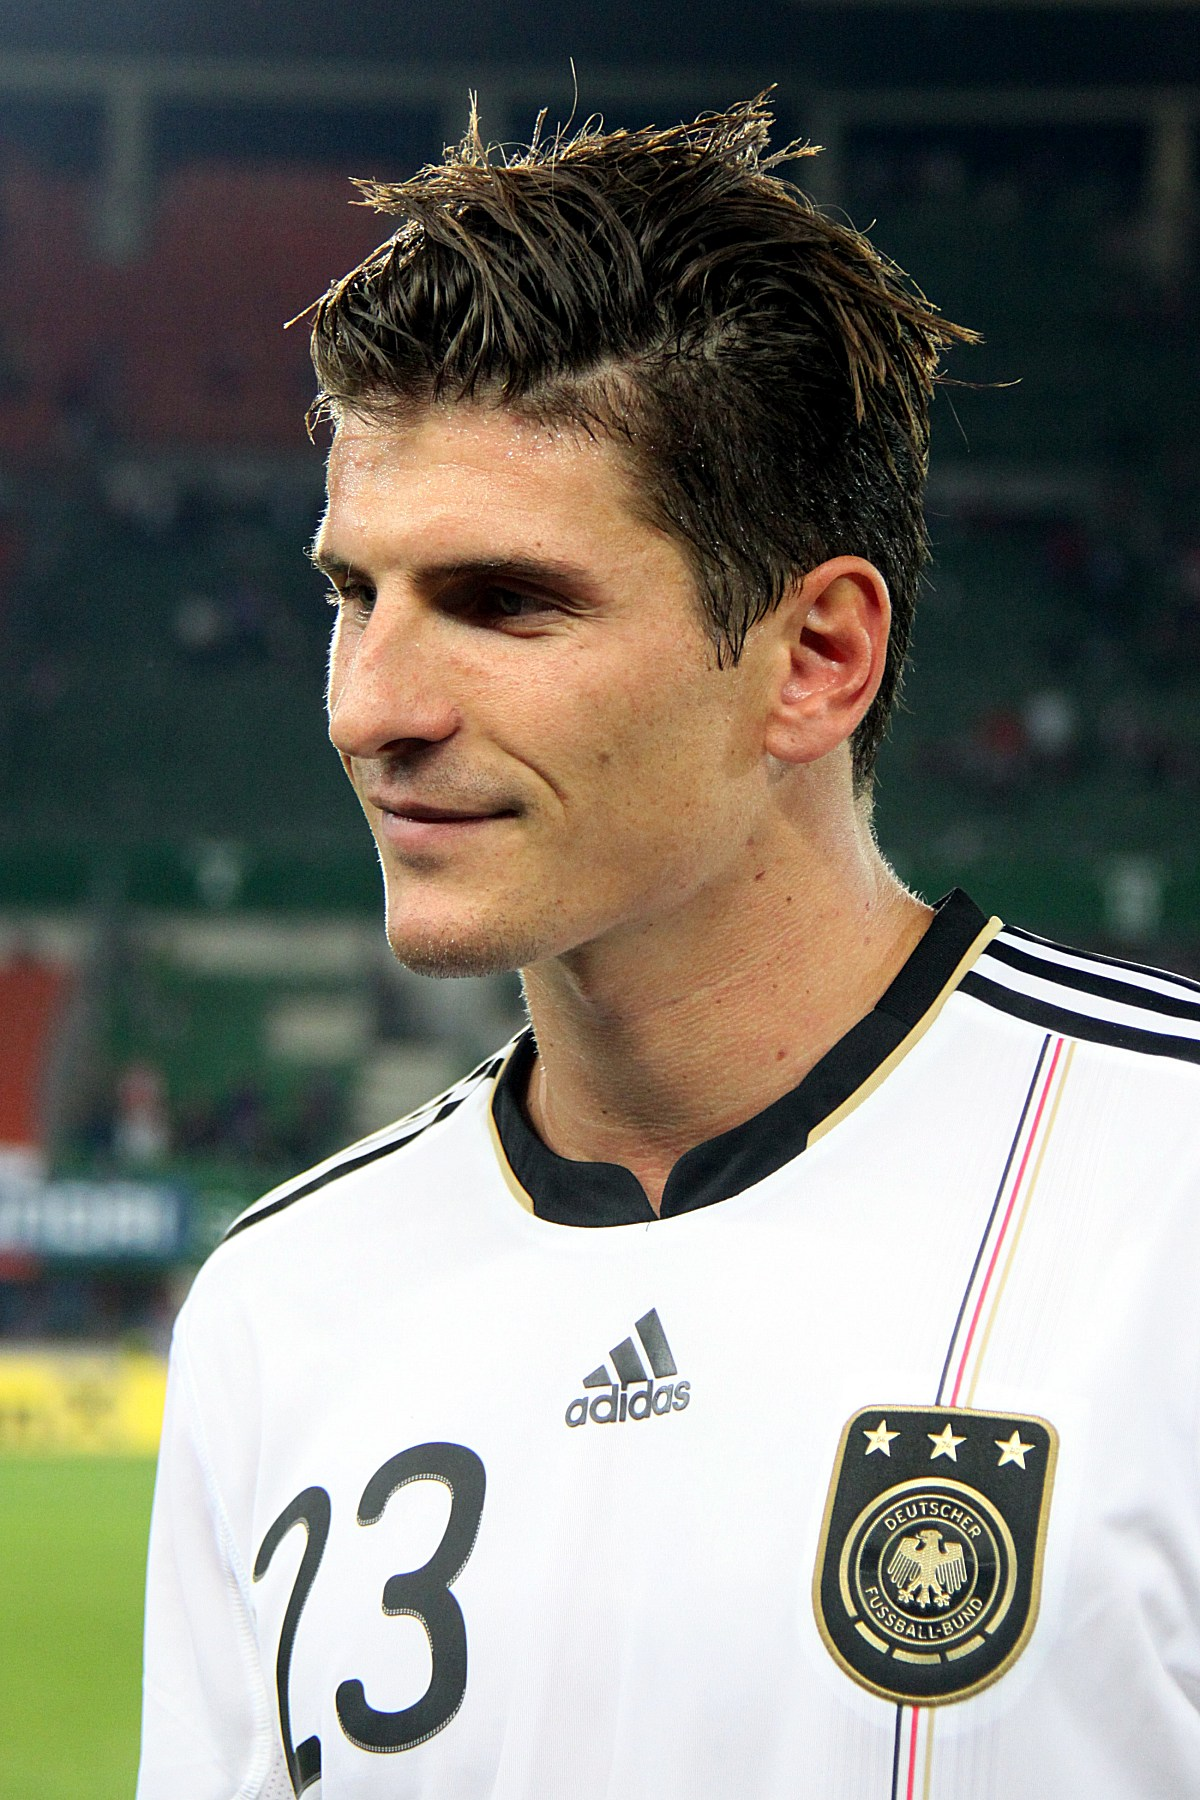 The 32-year old son of father Pepe Gómez and mother Christel Roth, 188 cm tall Mario Gomez in 2018 photo